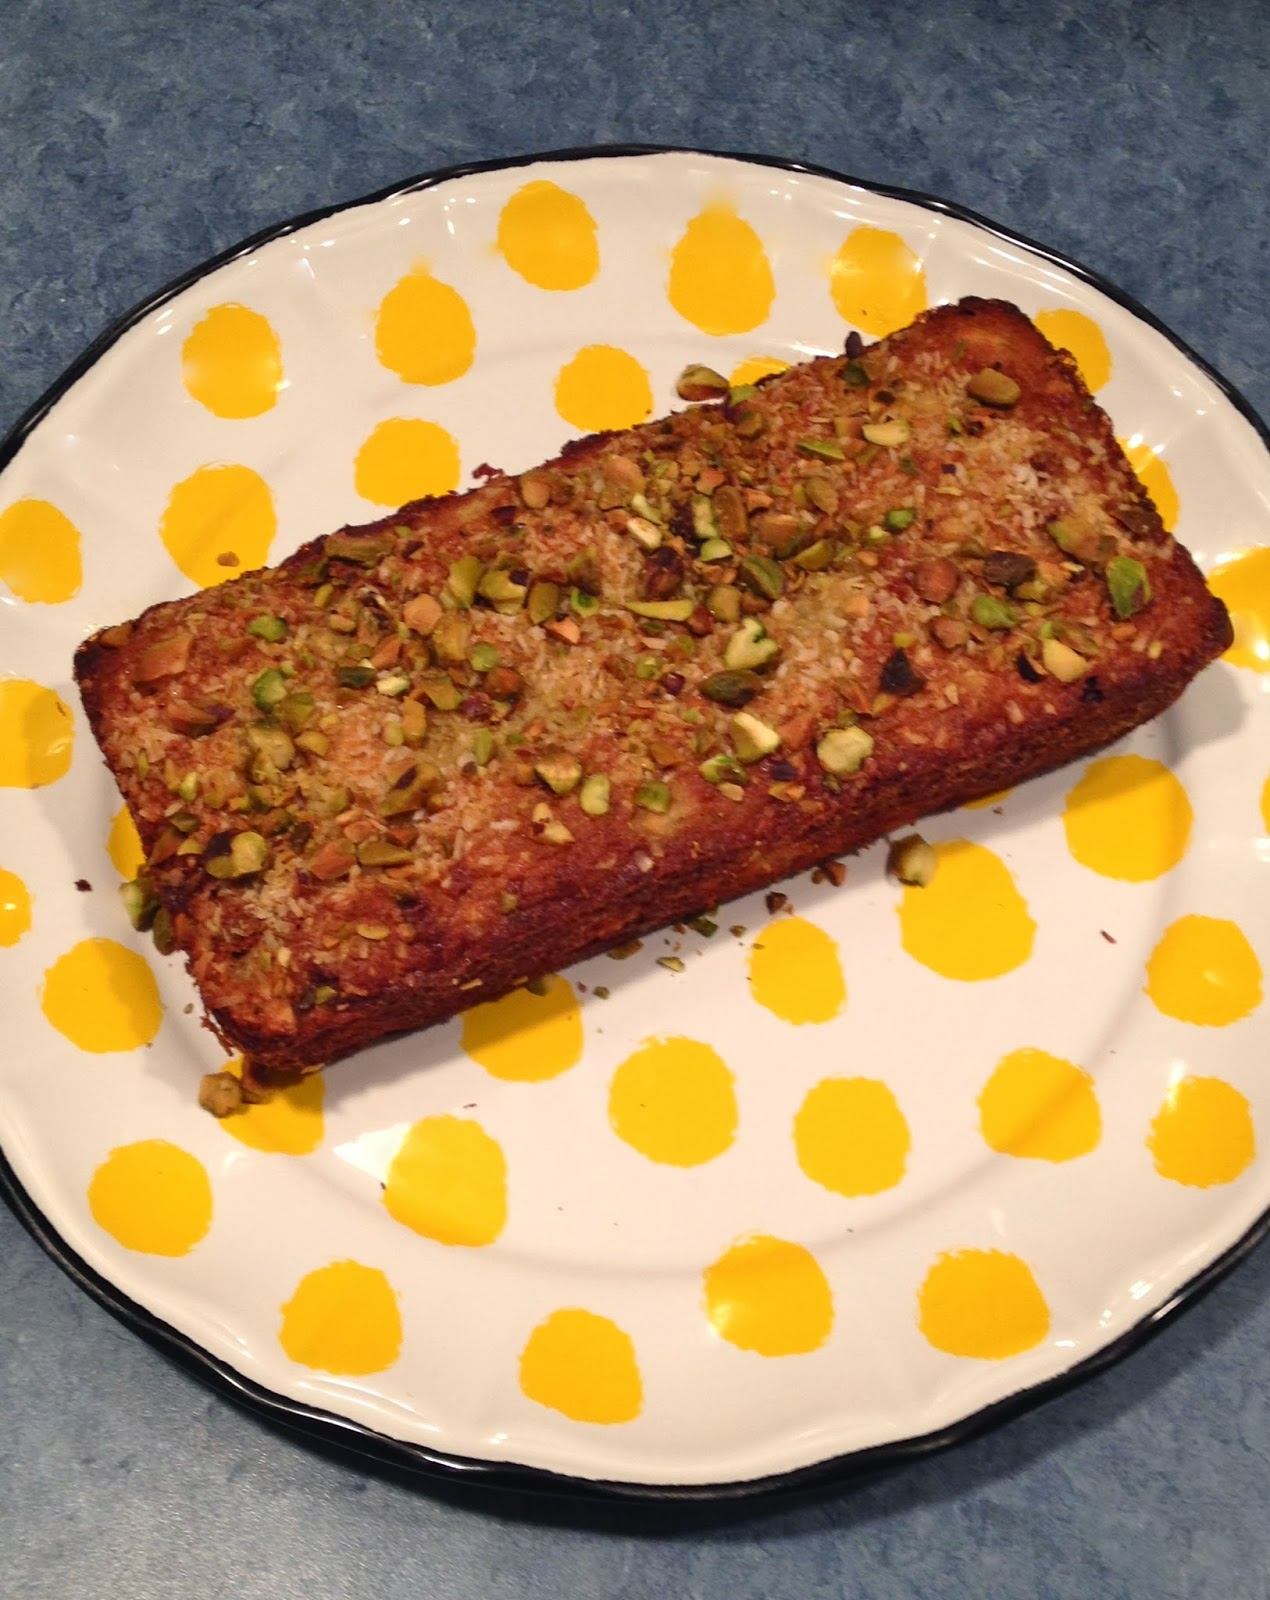 Paleo Lemon Coconut Bread: